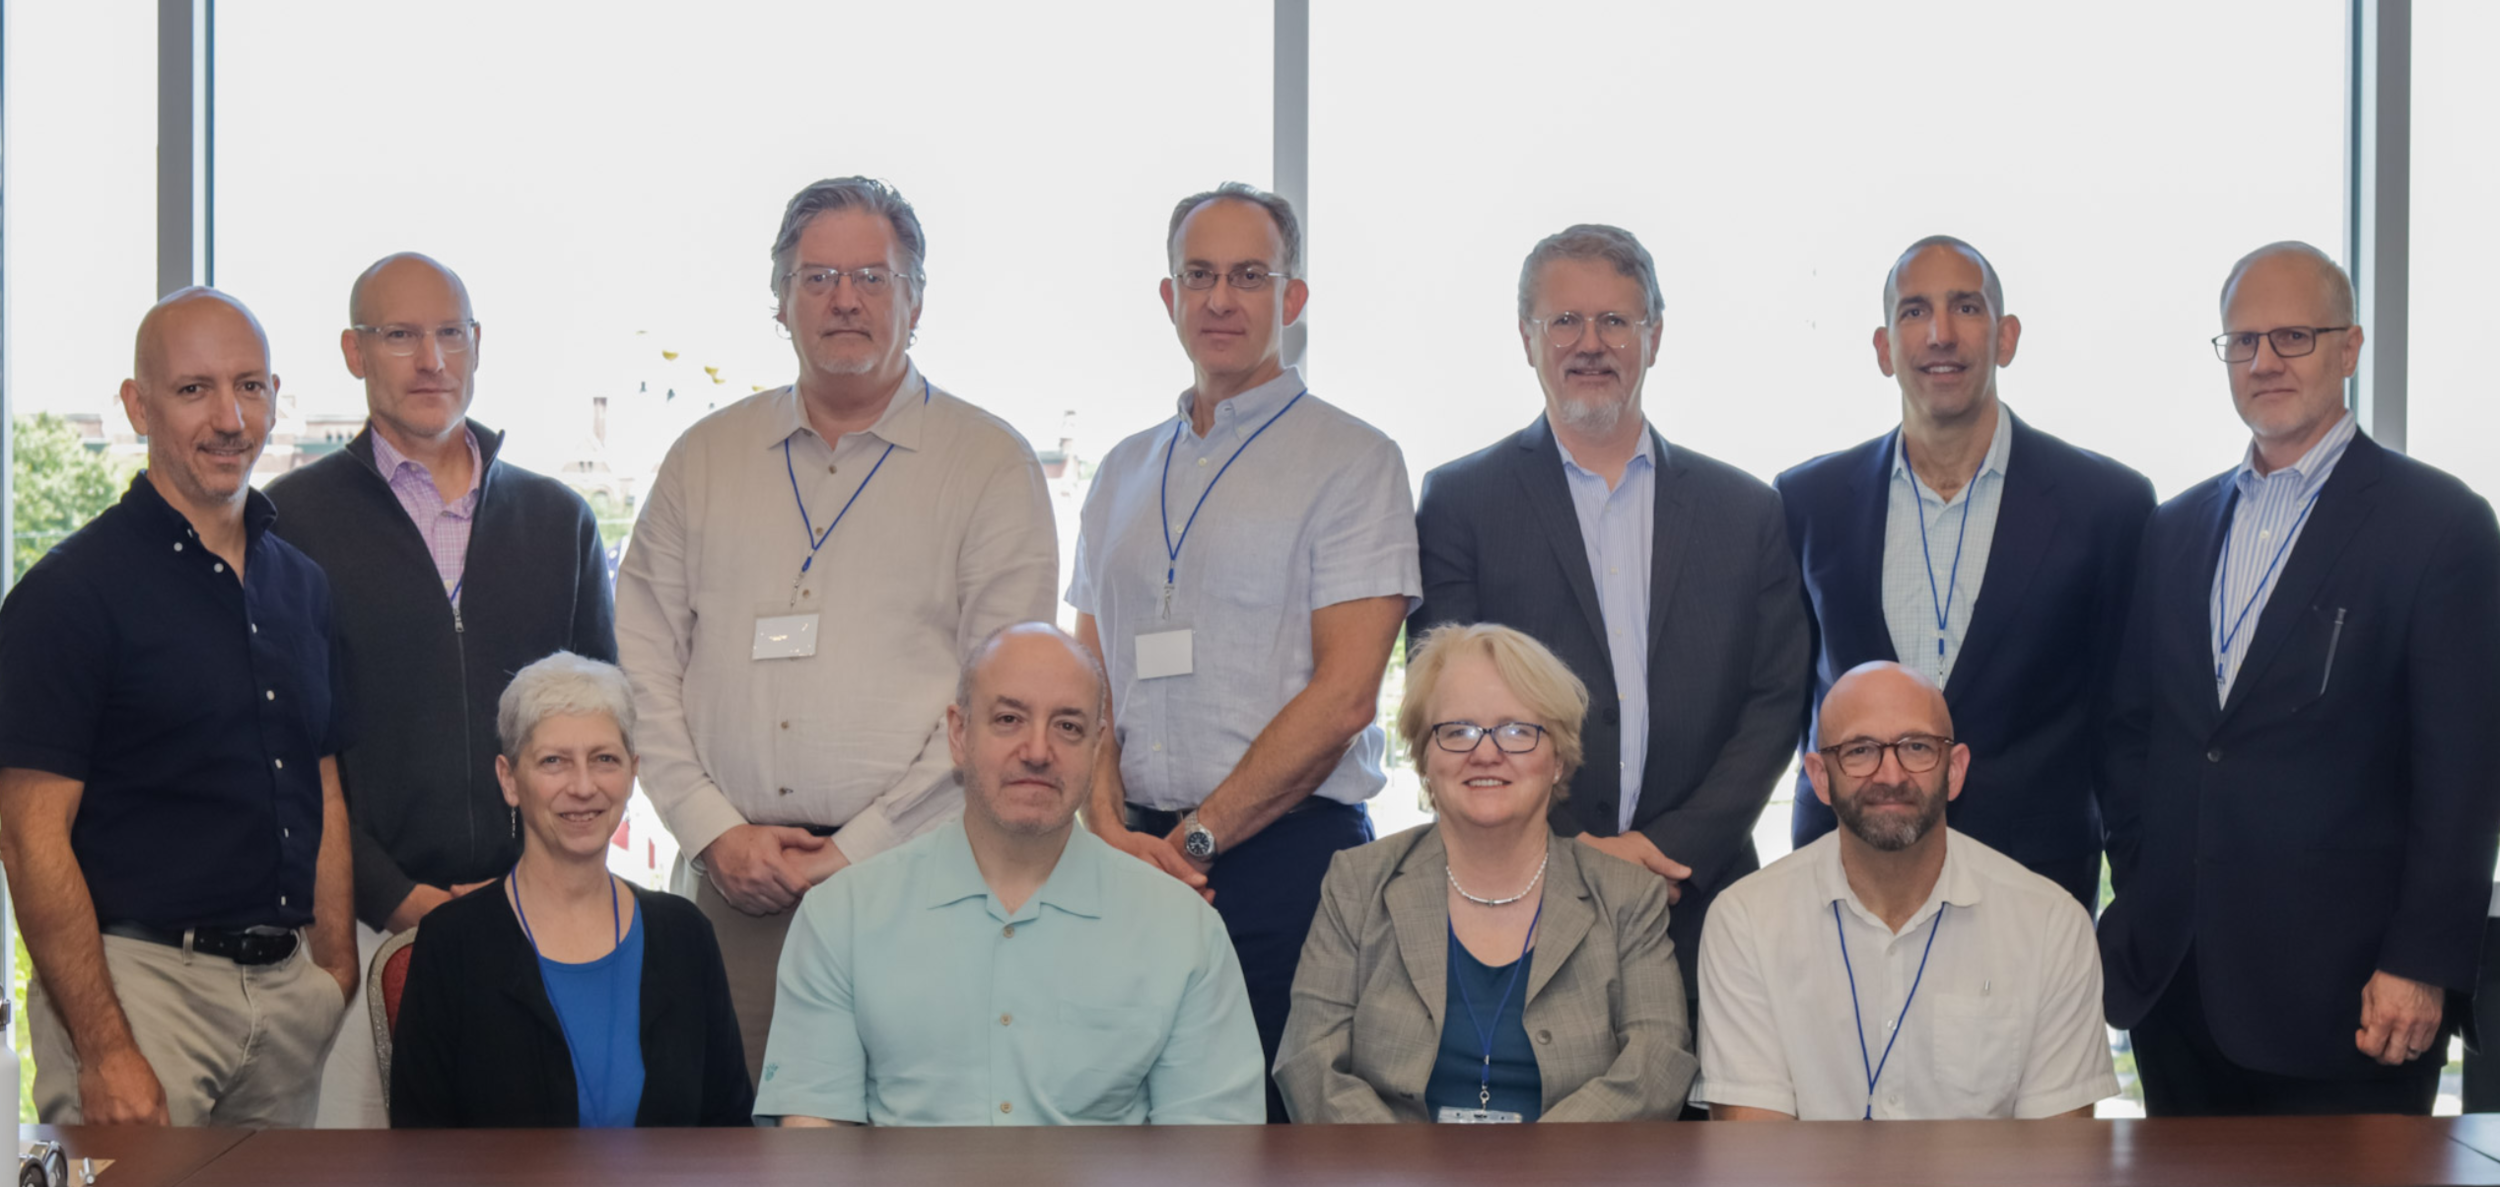 Attendees of the June 2019 Presidents' Forum convening in Montgomery, Alabama.